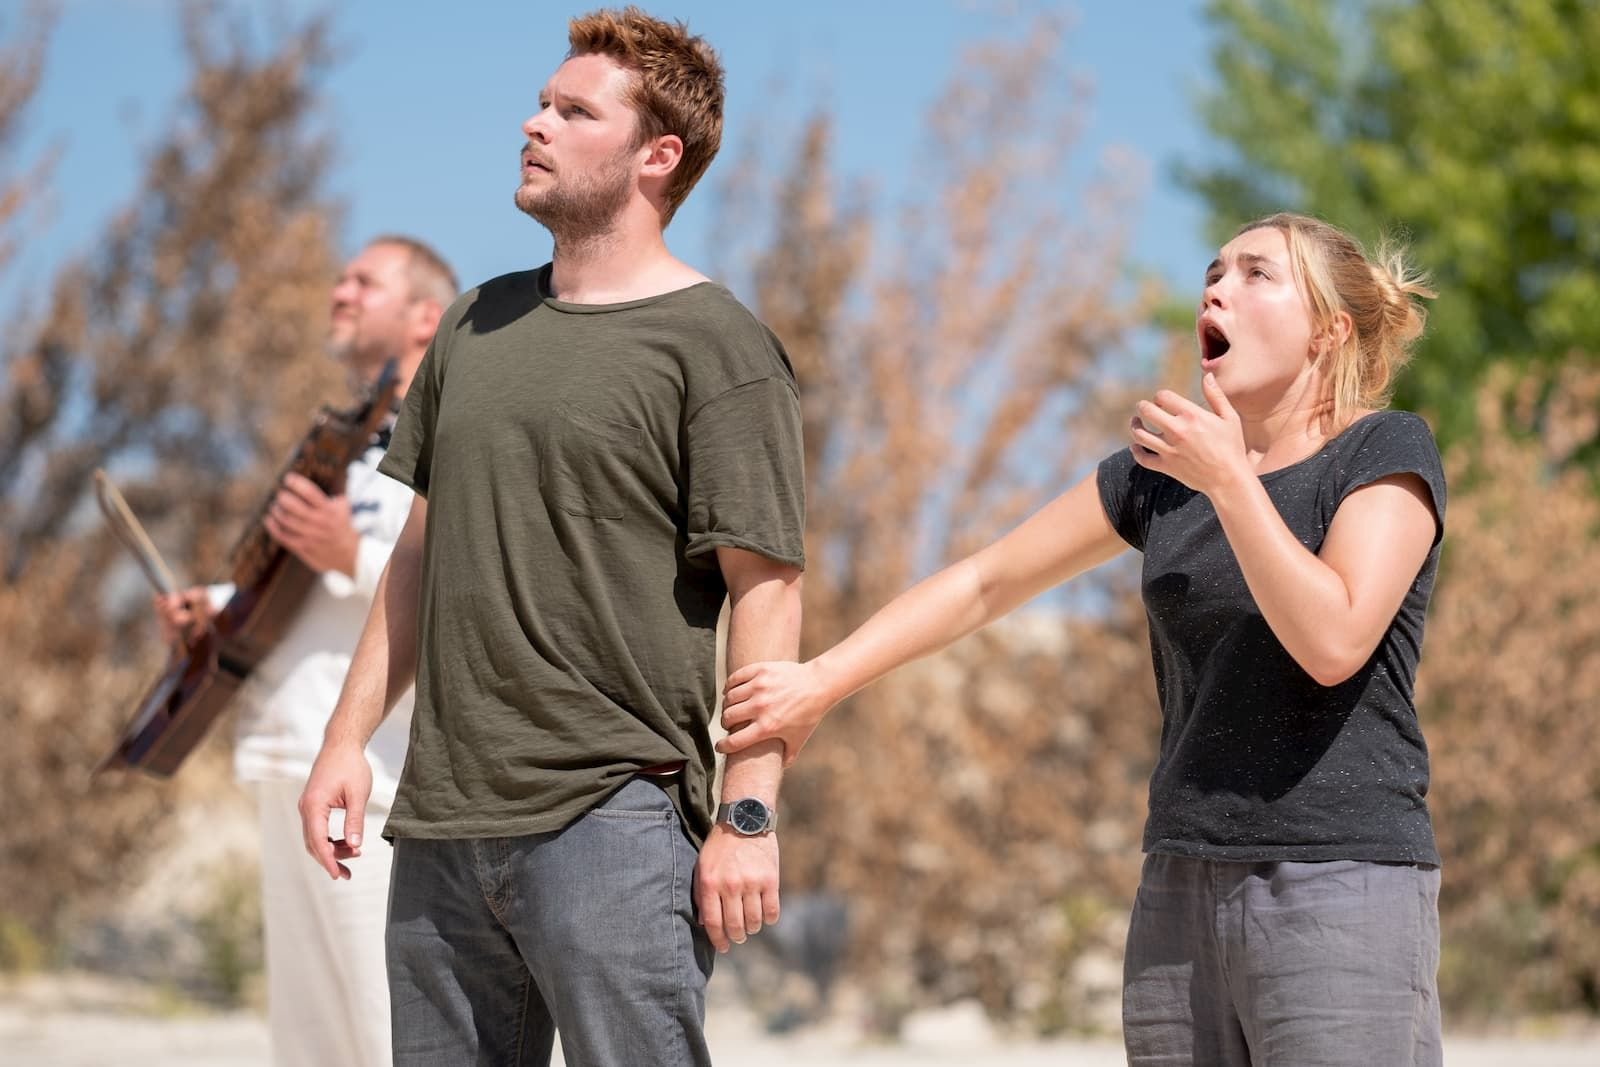 """Dani (Florence Pugh, right) and her boyfriend, Christian (Jack Reynor), see something horrific in writer-director Ari Aster's horror thriller """"Midsommar."""" (Photo courtesy of A24 Films.)"""